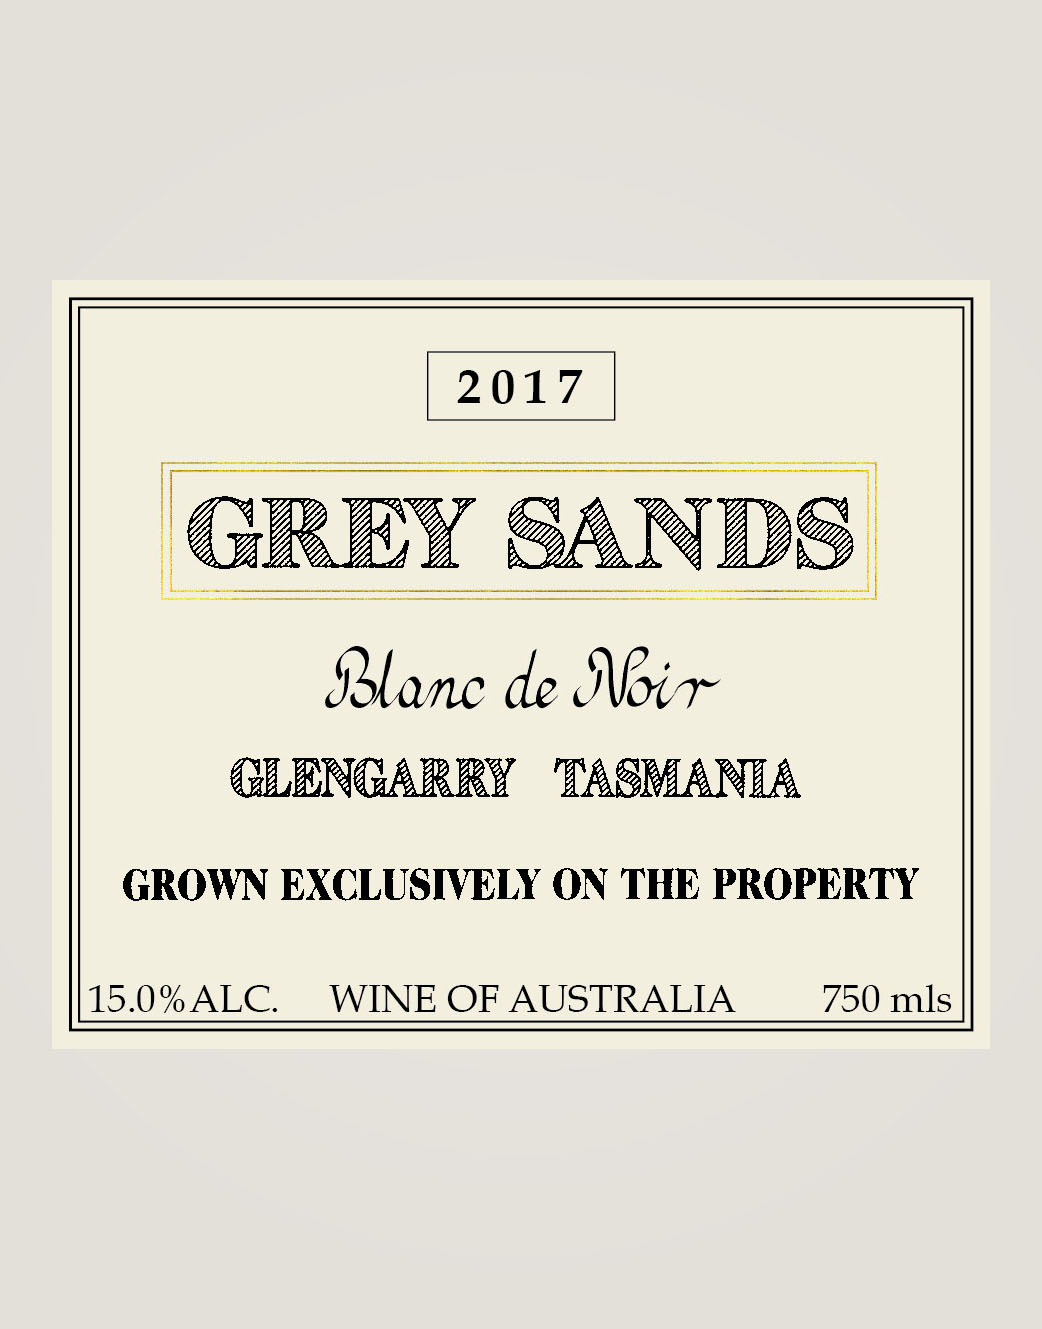 Grey Sands Blanc de Noir label